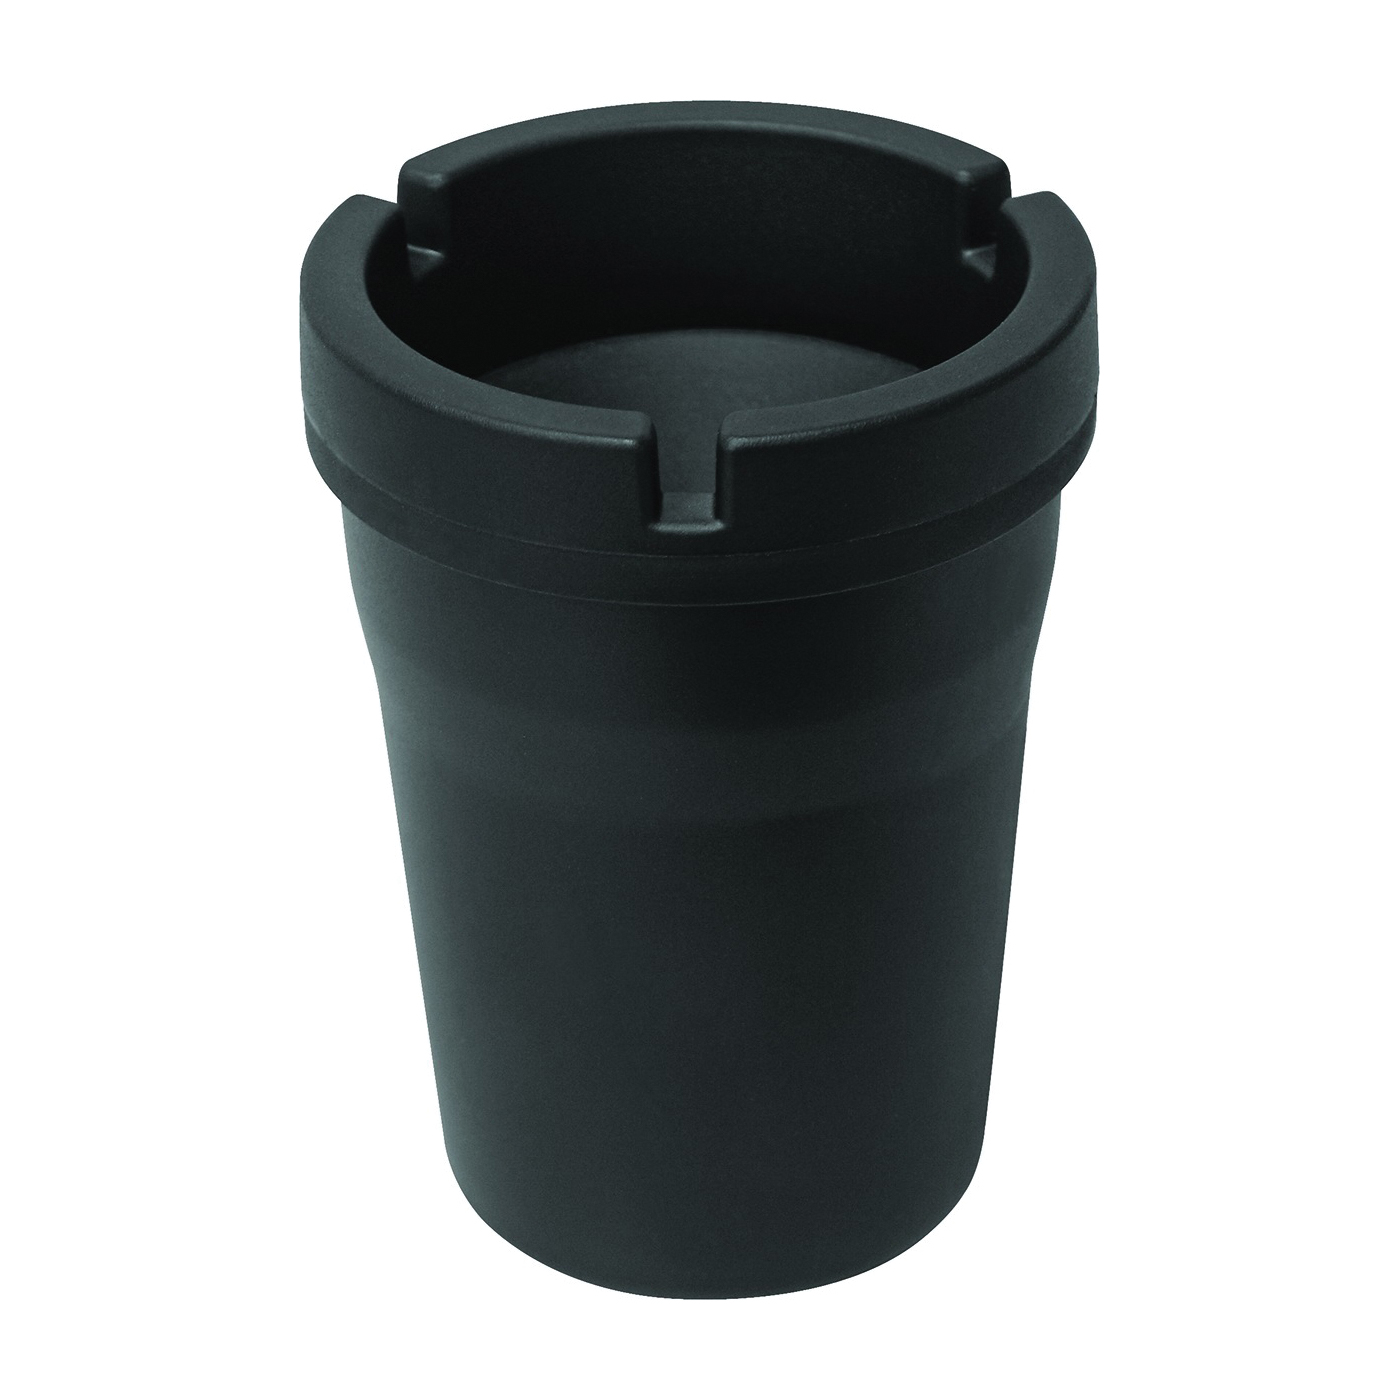 Picture of GENUINE VICTOR 22-5-00370-VCT12 Butt Bucket Counter, Plastic